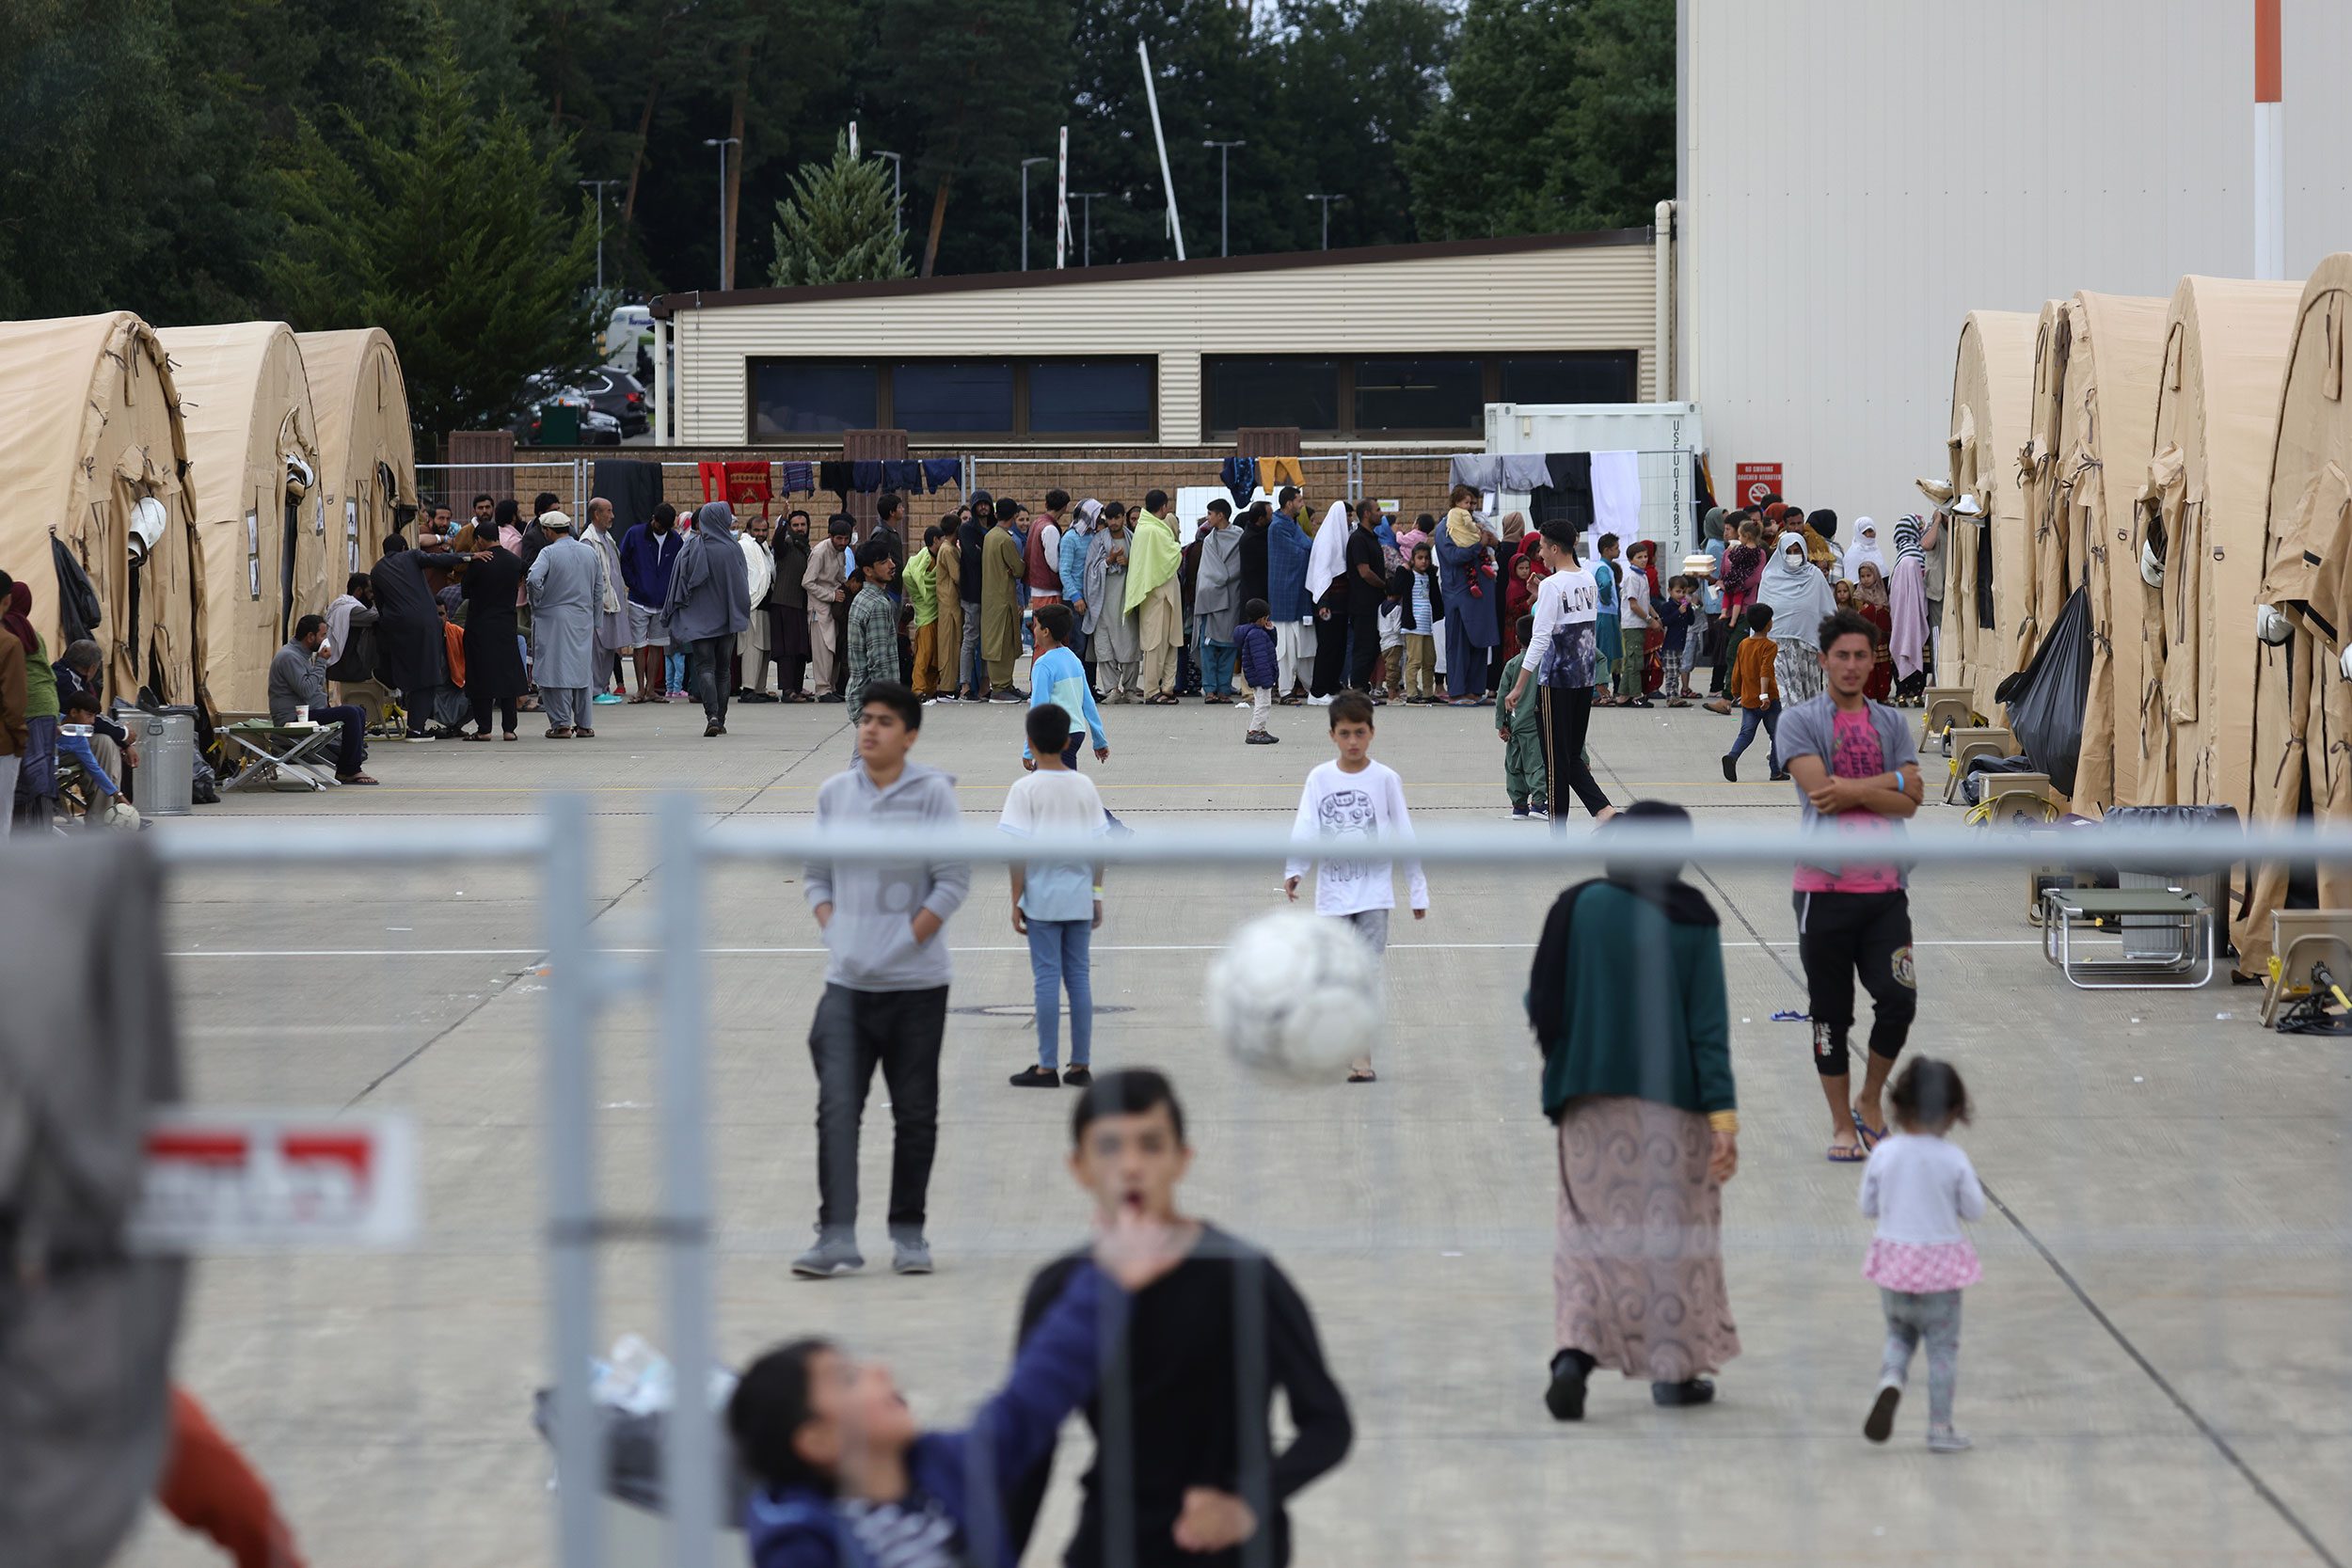 Evacuees walk around a temporary shelter at Ramstein Air Base in Germany on August 26.